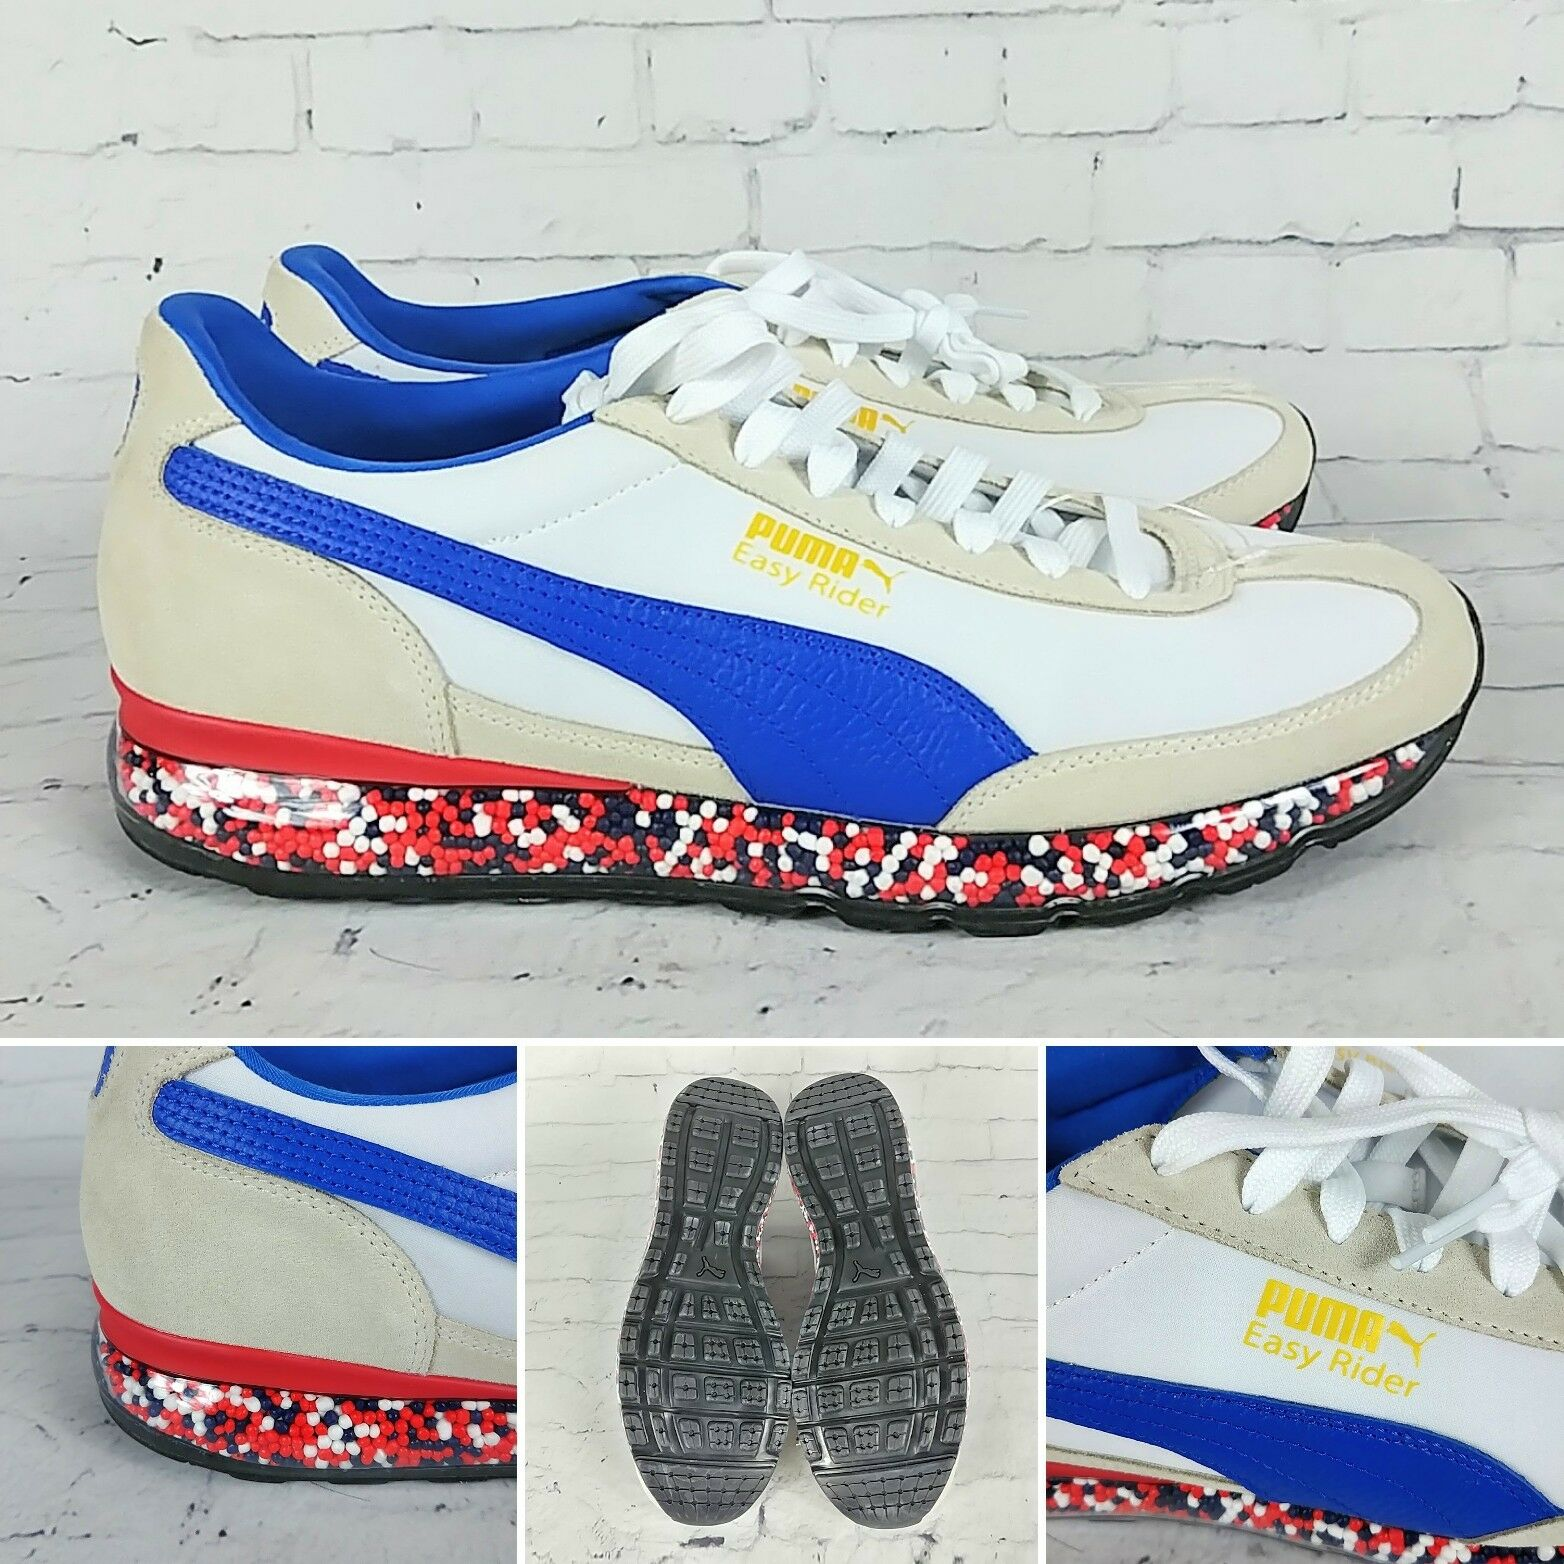 Puma Jamming Easy Rider Size 11 Red bluee Cream White Mens shoes NWOB 367832-04